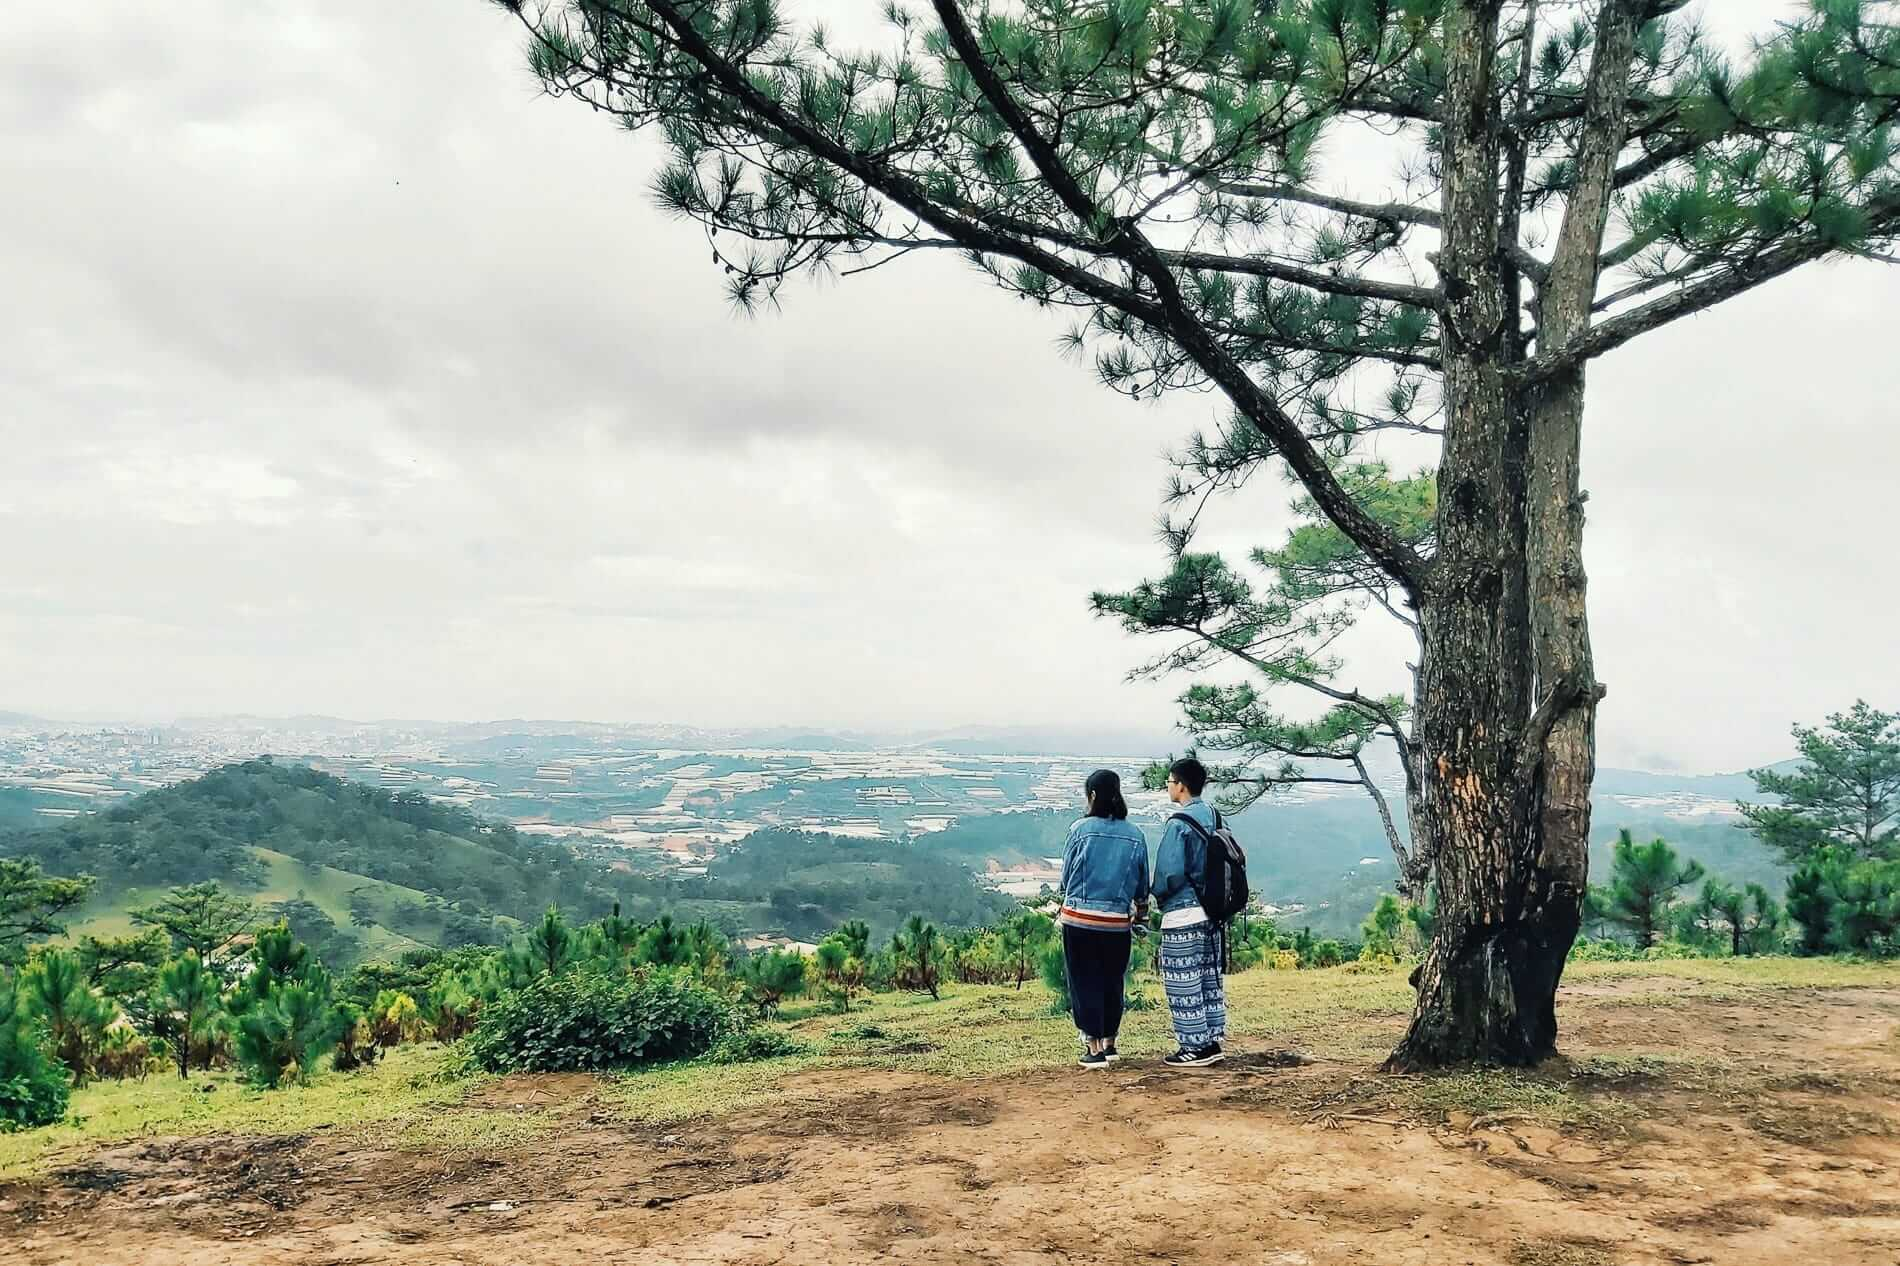 visitors enjoy this mountainside view of Da Lat City